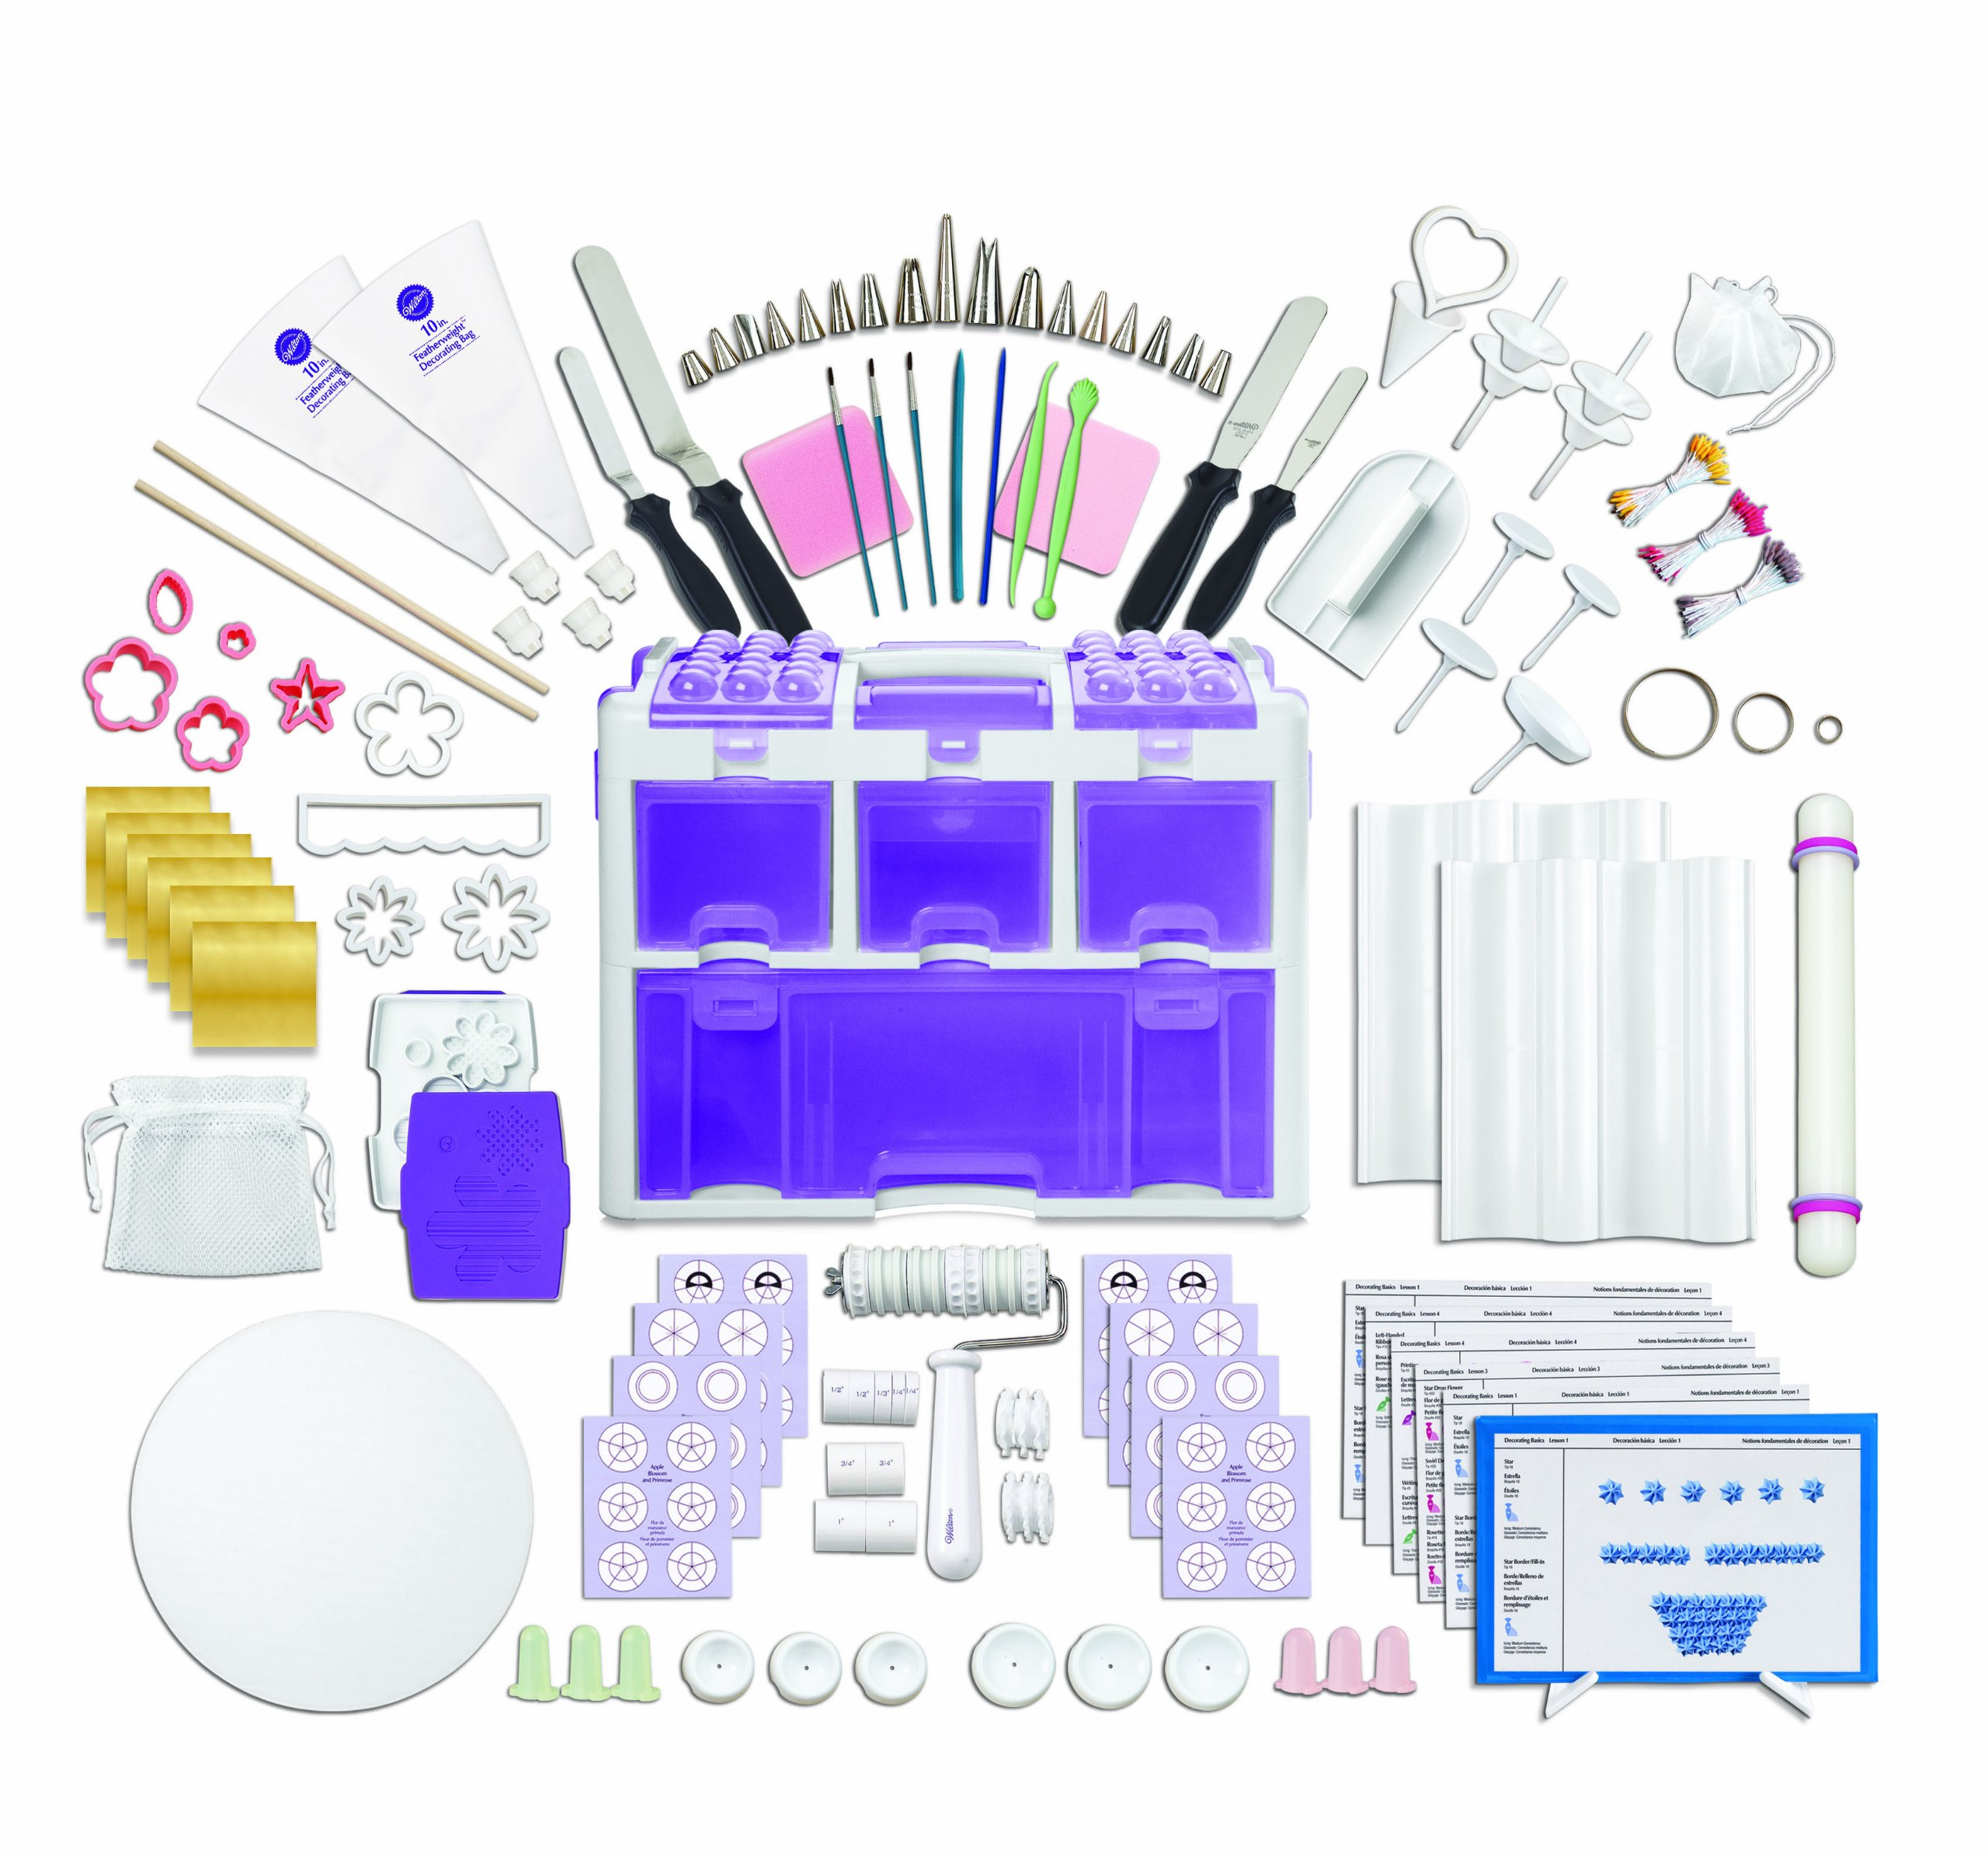 Wilton 2109-0309 Ultimate Professional Cake Decorating Set, Purple- Discontinued By Manufacturer by Wilton